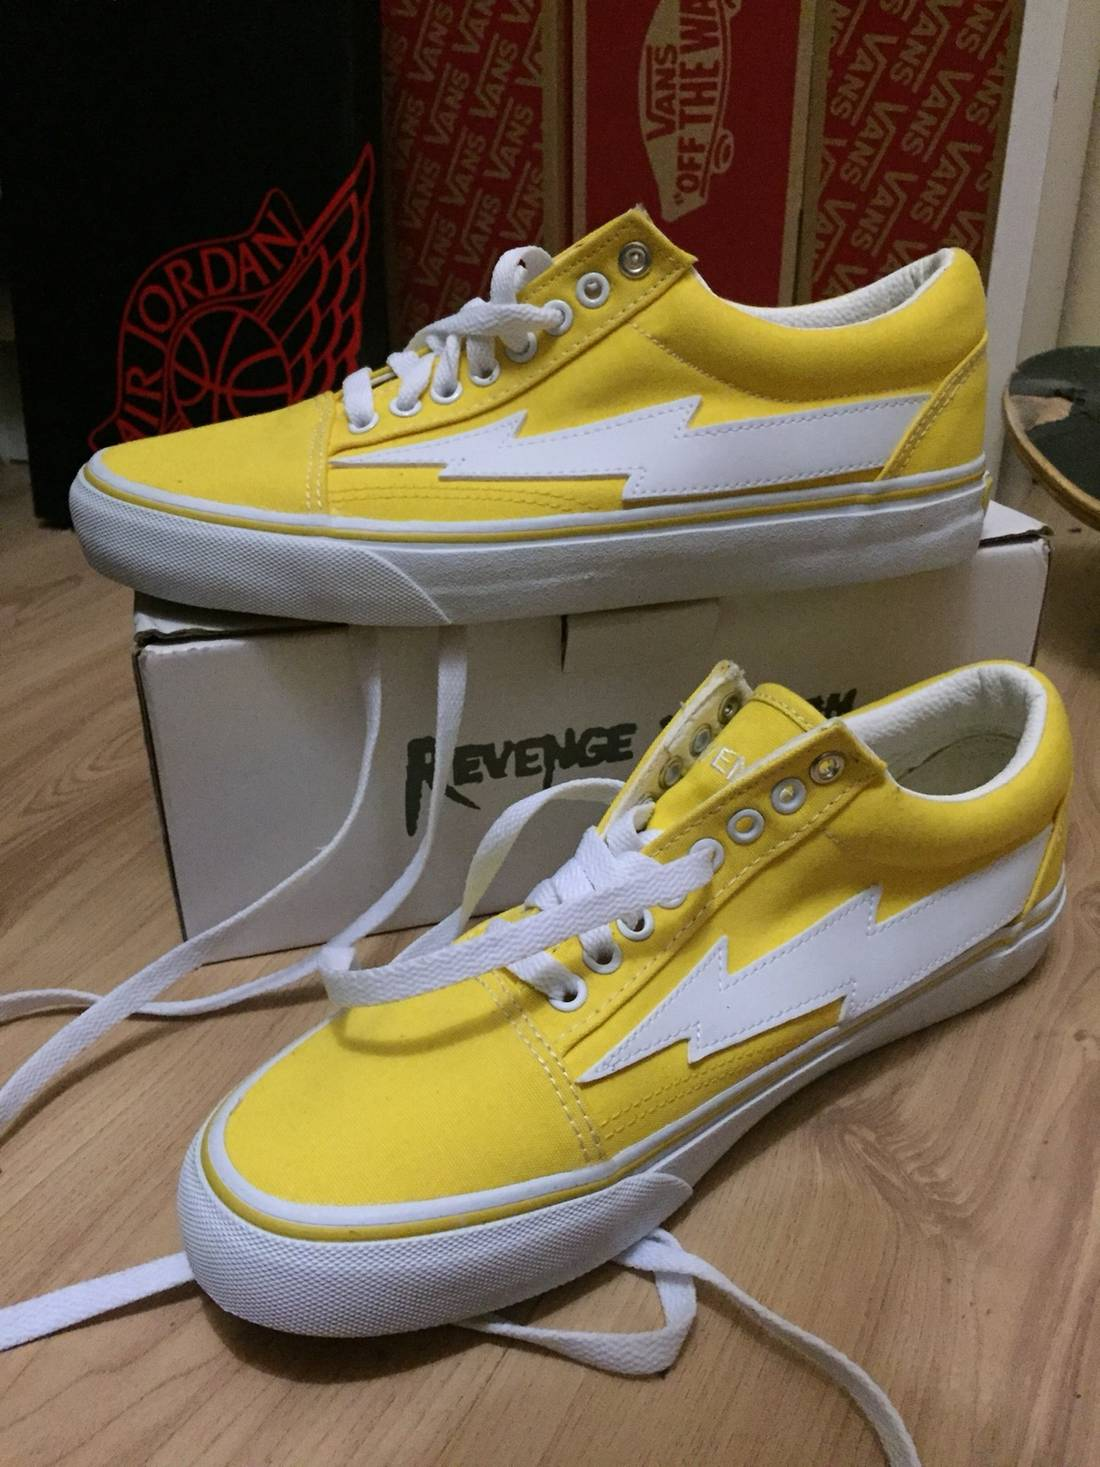 a7c3f6501b59f9 ... website full of sneakers half off Ian Connor Revenge X Storm Vol 1  Yellow Size US ...